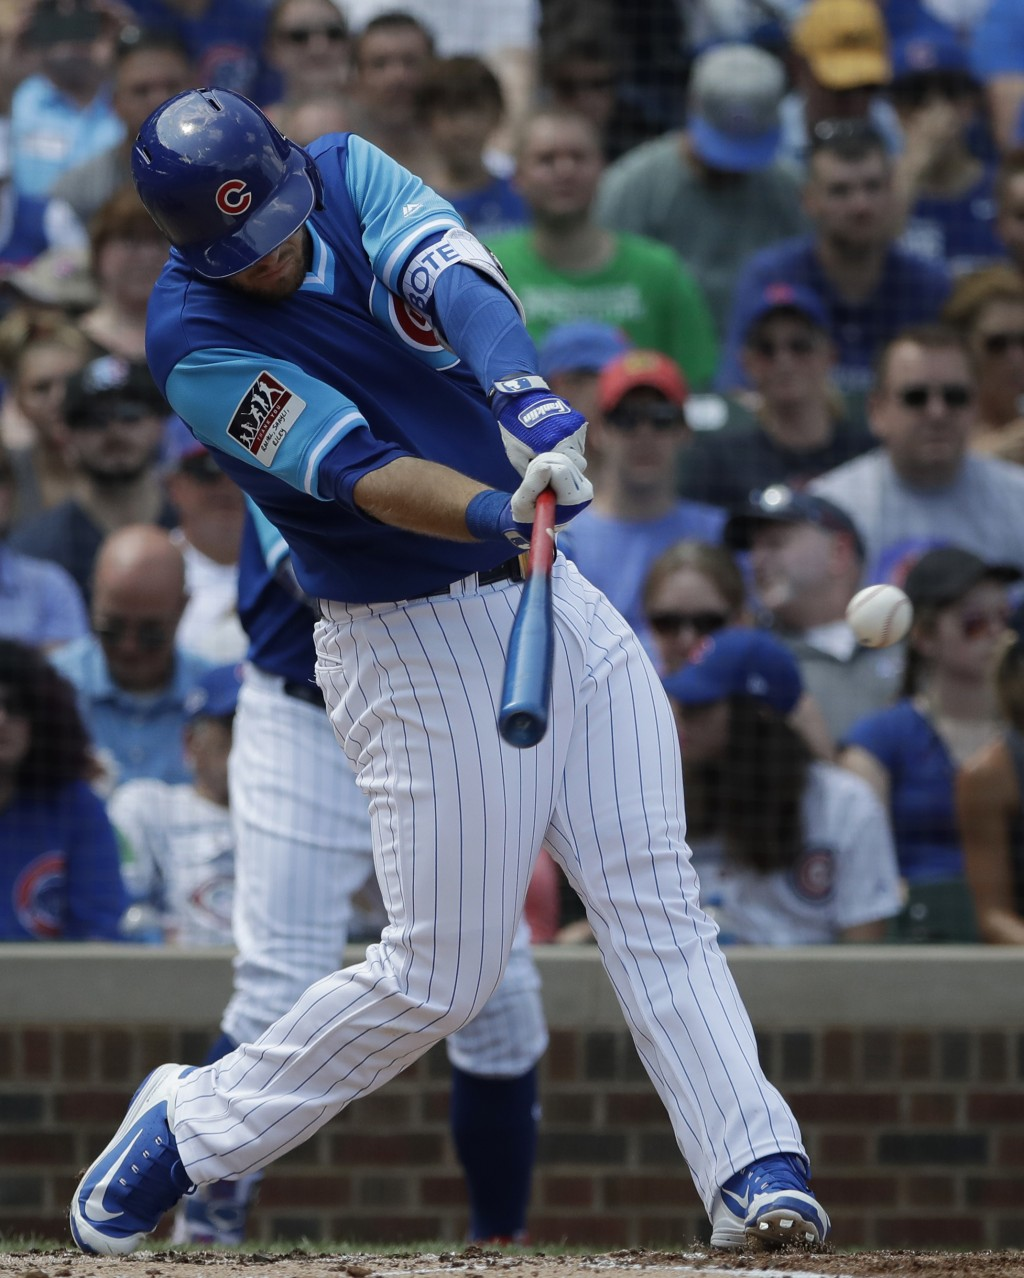 Chicago Cubs' David Bote hits a one-run single against the Cincinnati Reds during the first inning of a baseball game Sunday, Aug. 26, 2018, in Chicag...